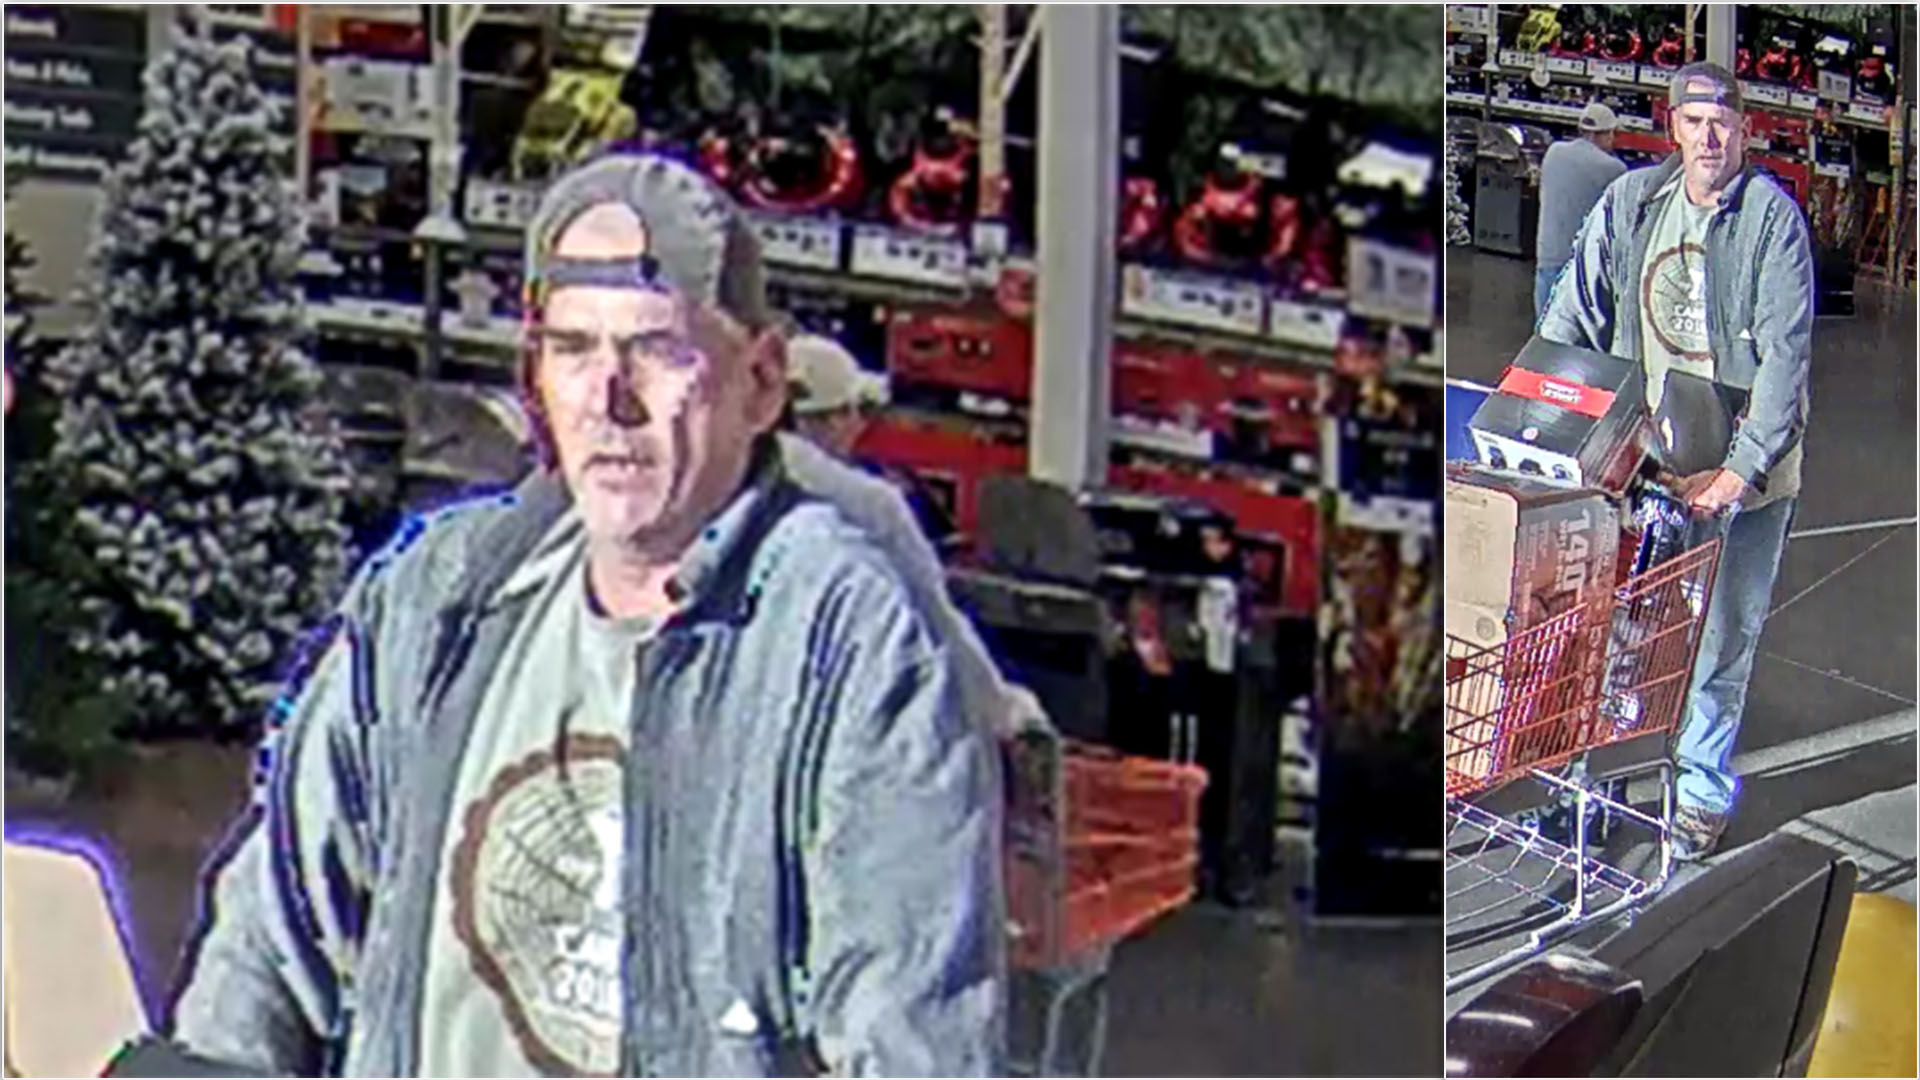 Spd Releases Photos Of Possible Suspect In Home Depot Theft